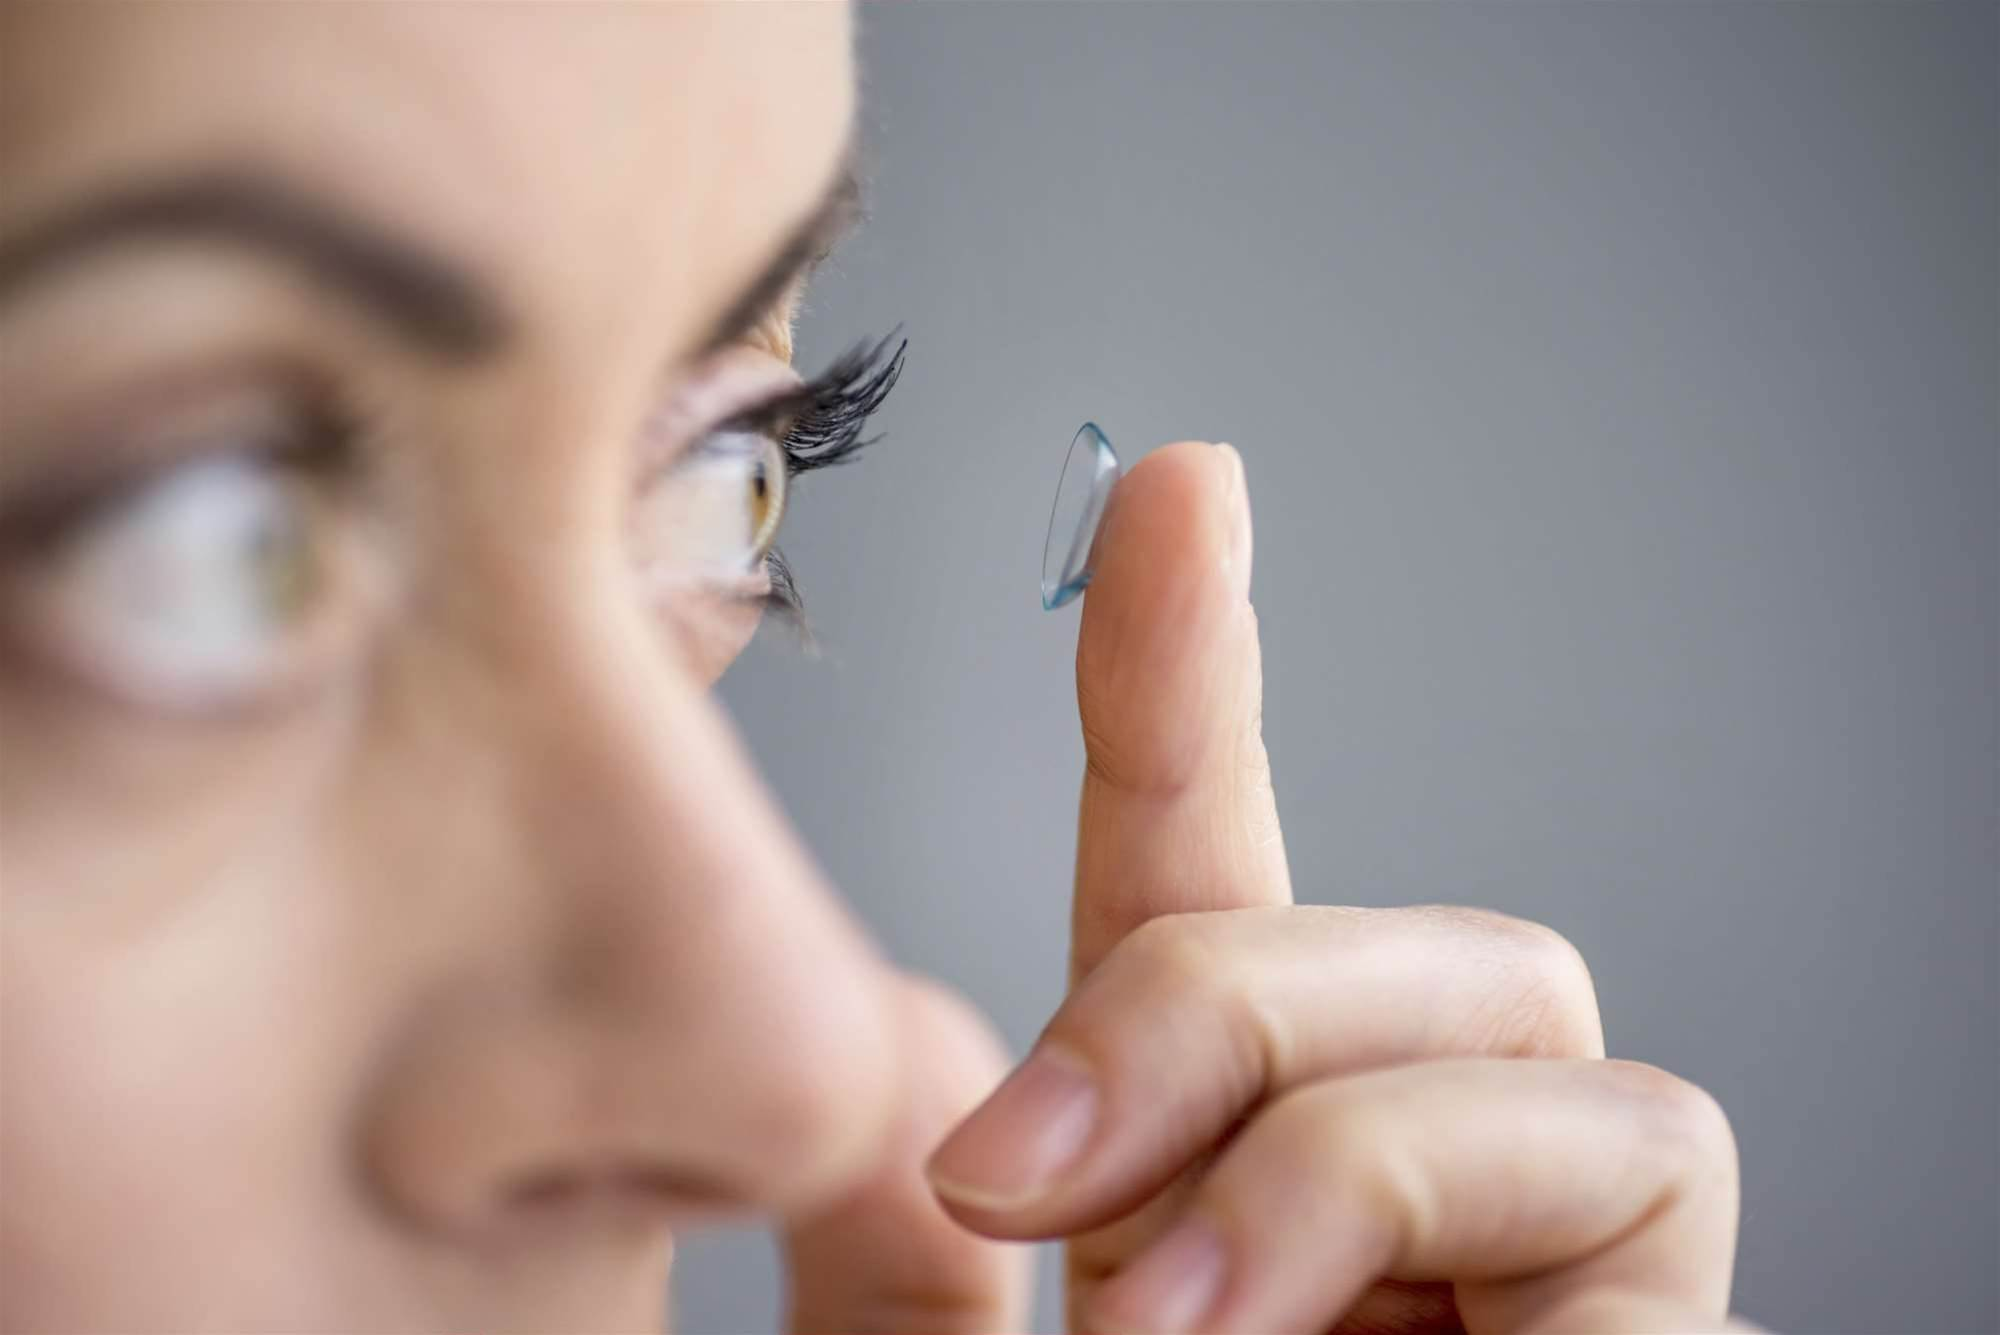 Google, Novartis design smart contact lens